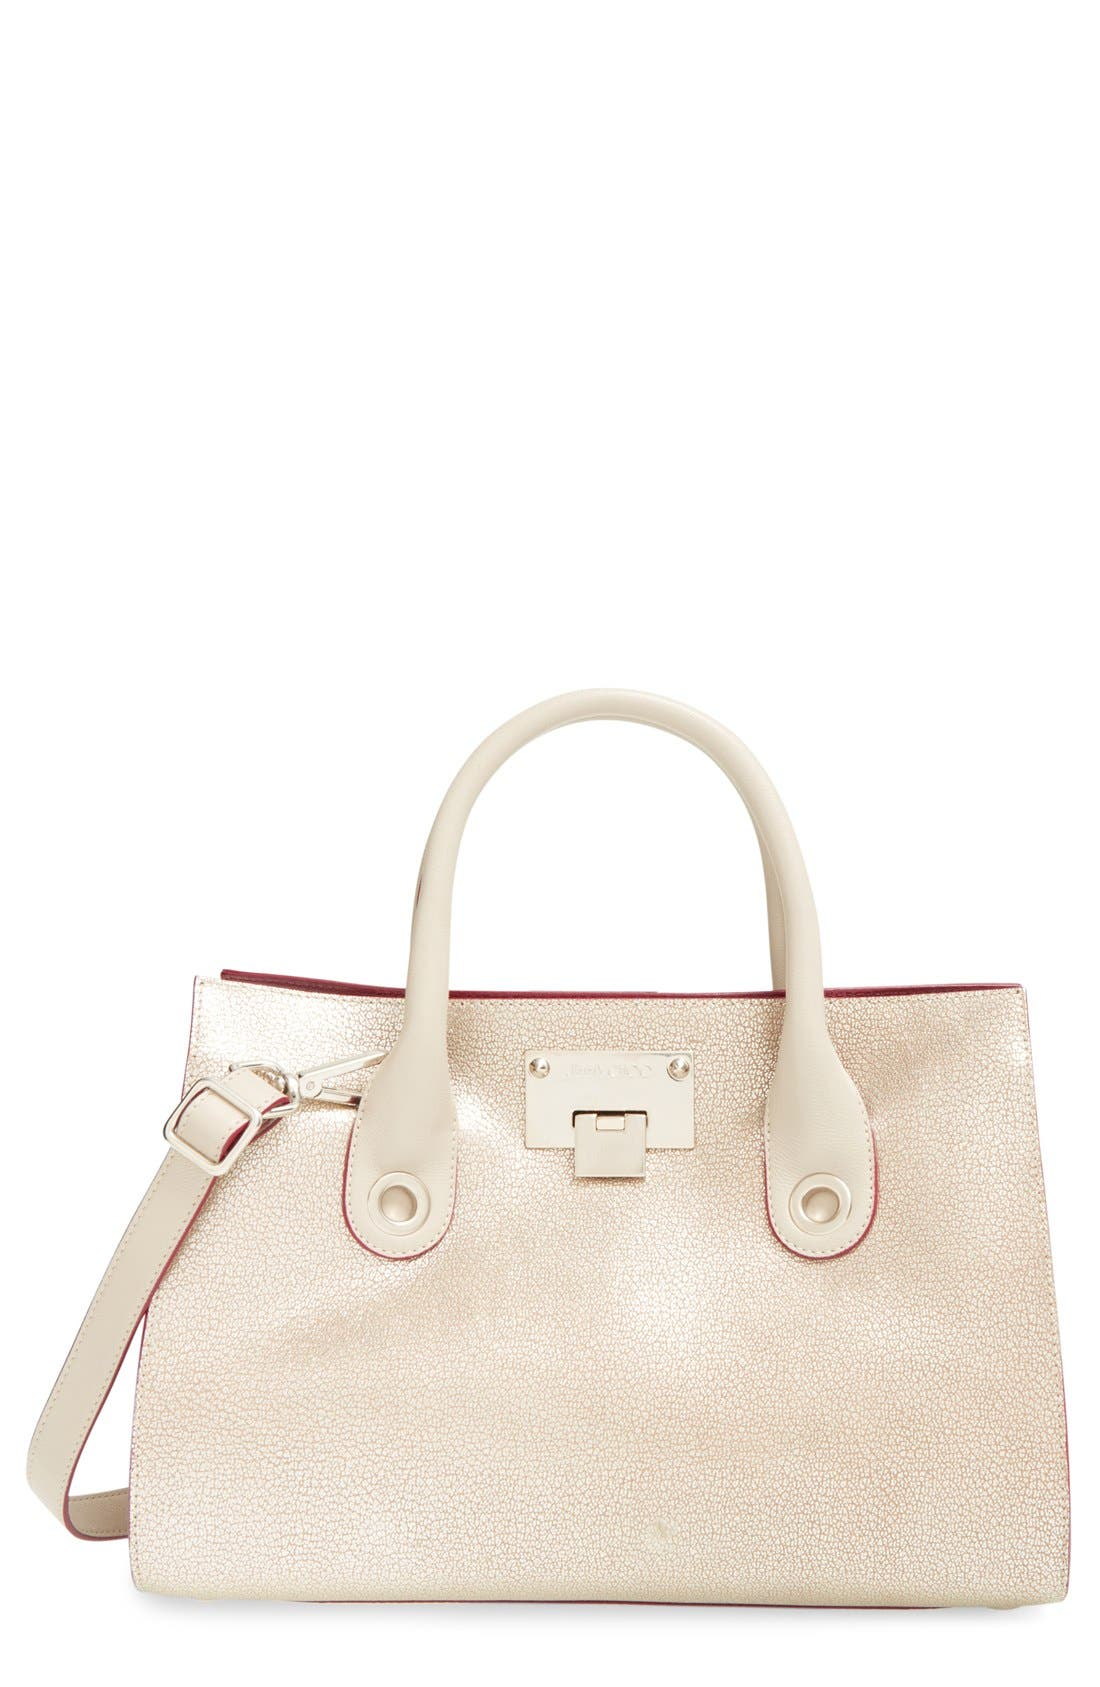 JIMMY CHOO 'Medium Riley' Leather Tote